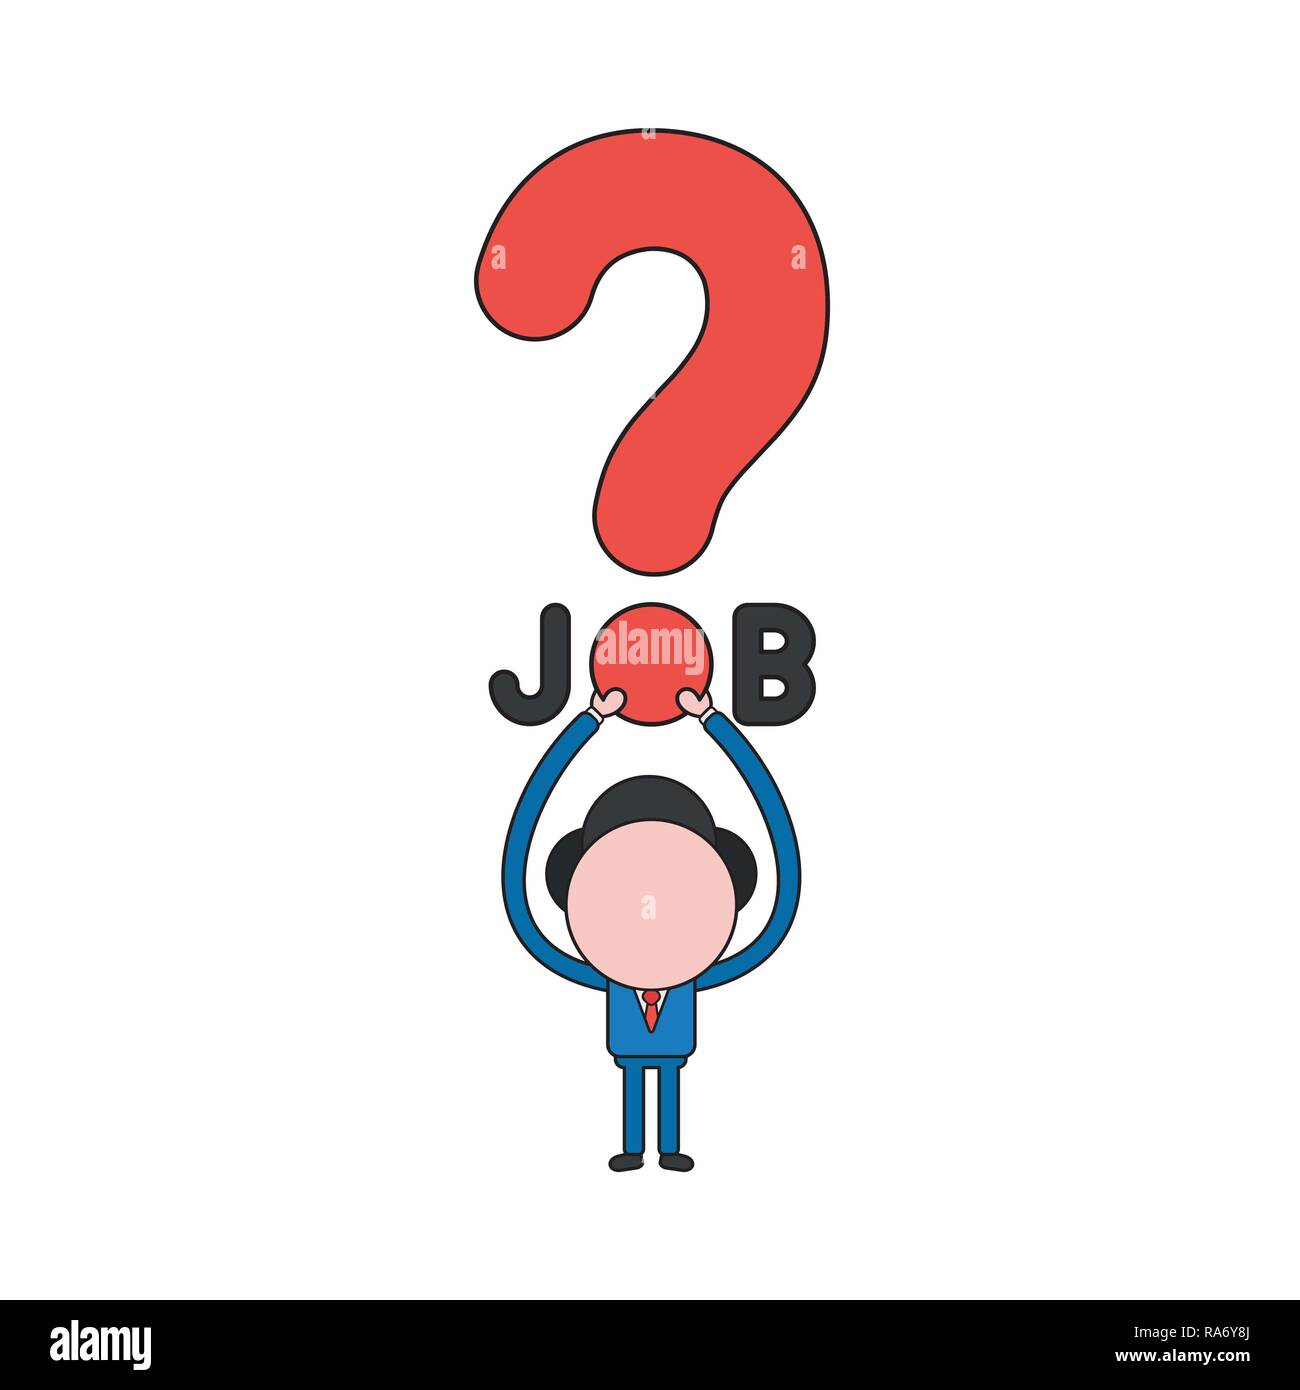 Vector illustration concept of businessman character holding up job word with question mark. Color and black outlines. - Stock Vector